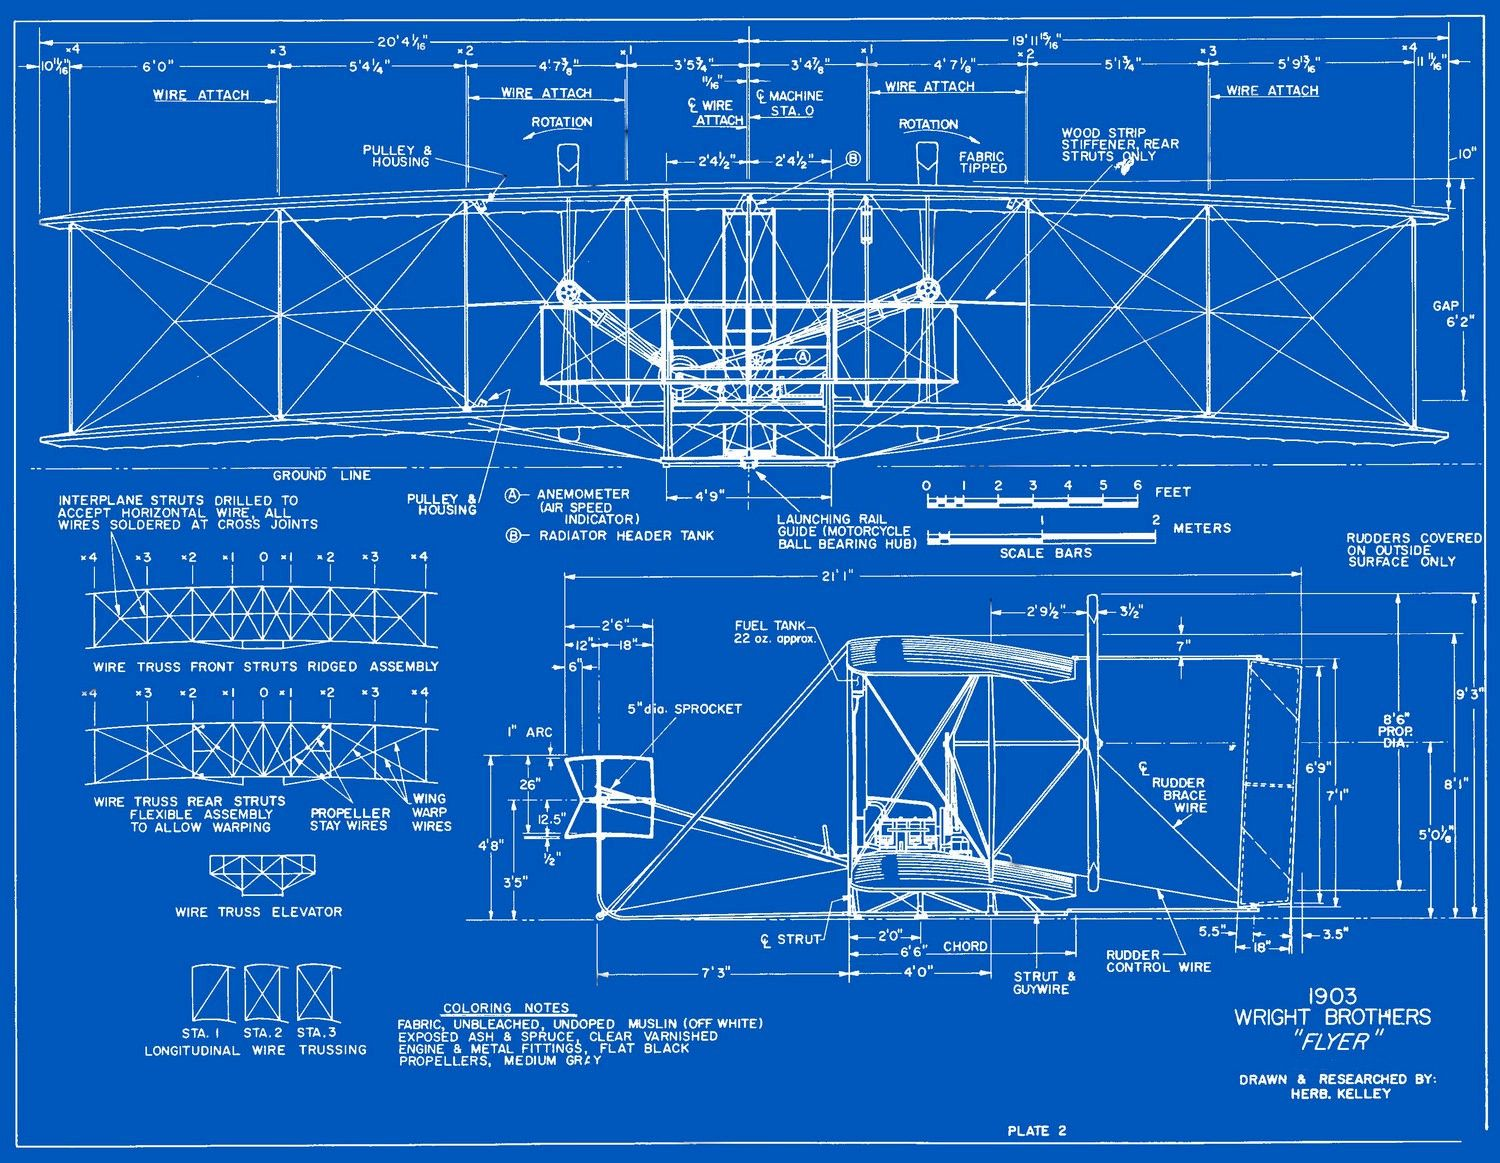 1903 wright flyer blueprints free download be cool museums